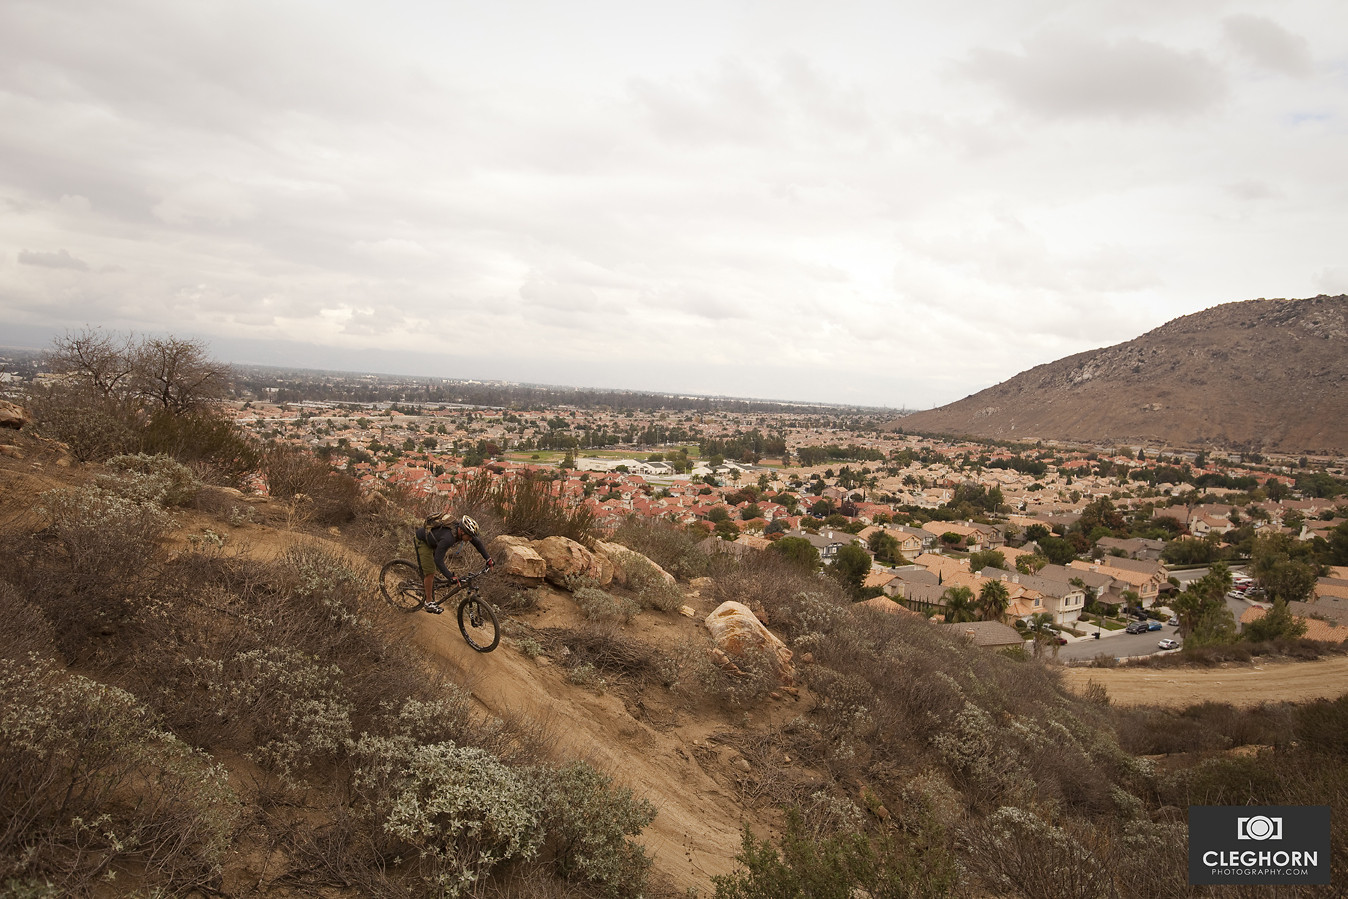 Southridge Super D - Cleghorn Photography - Mountain Biking Pictures - Vital MTB